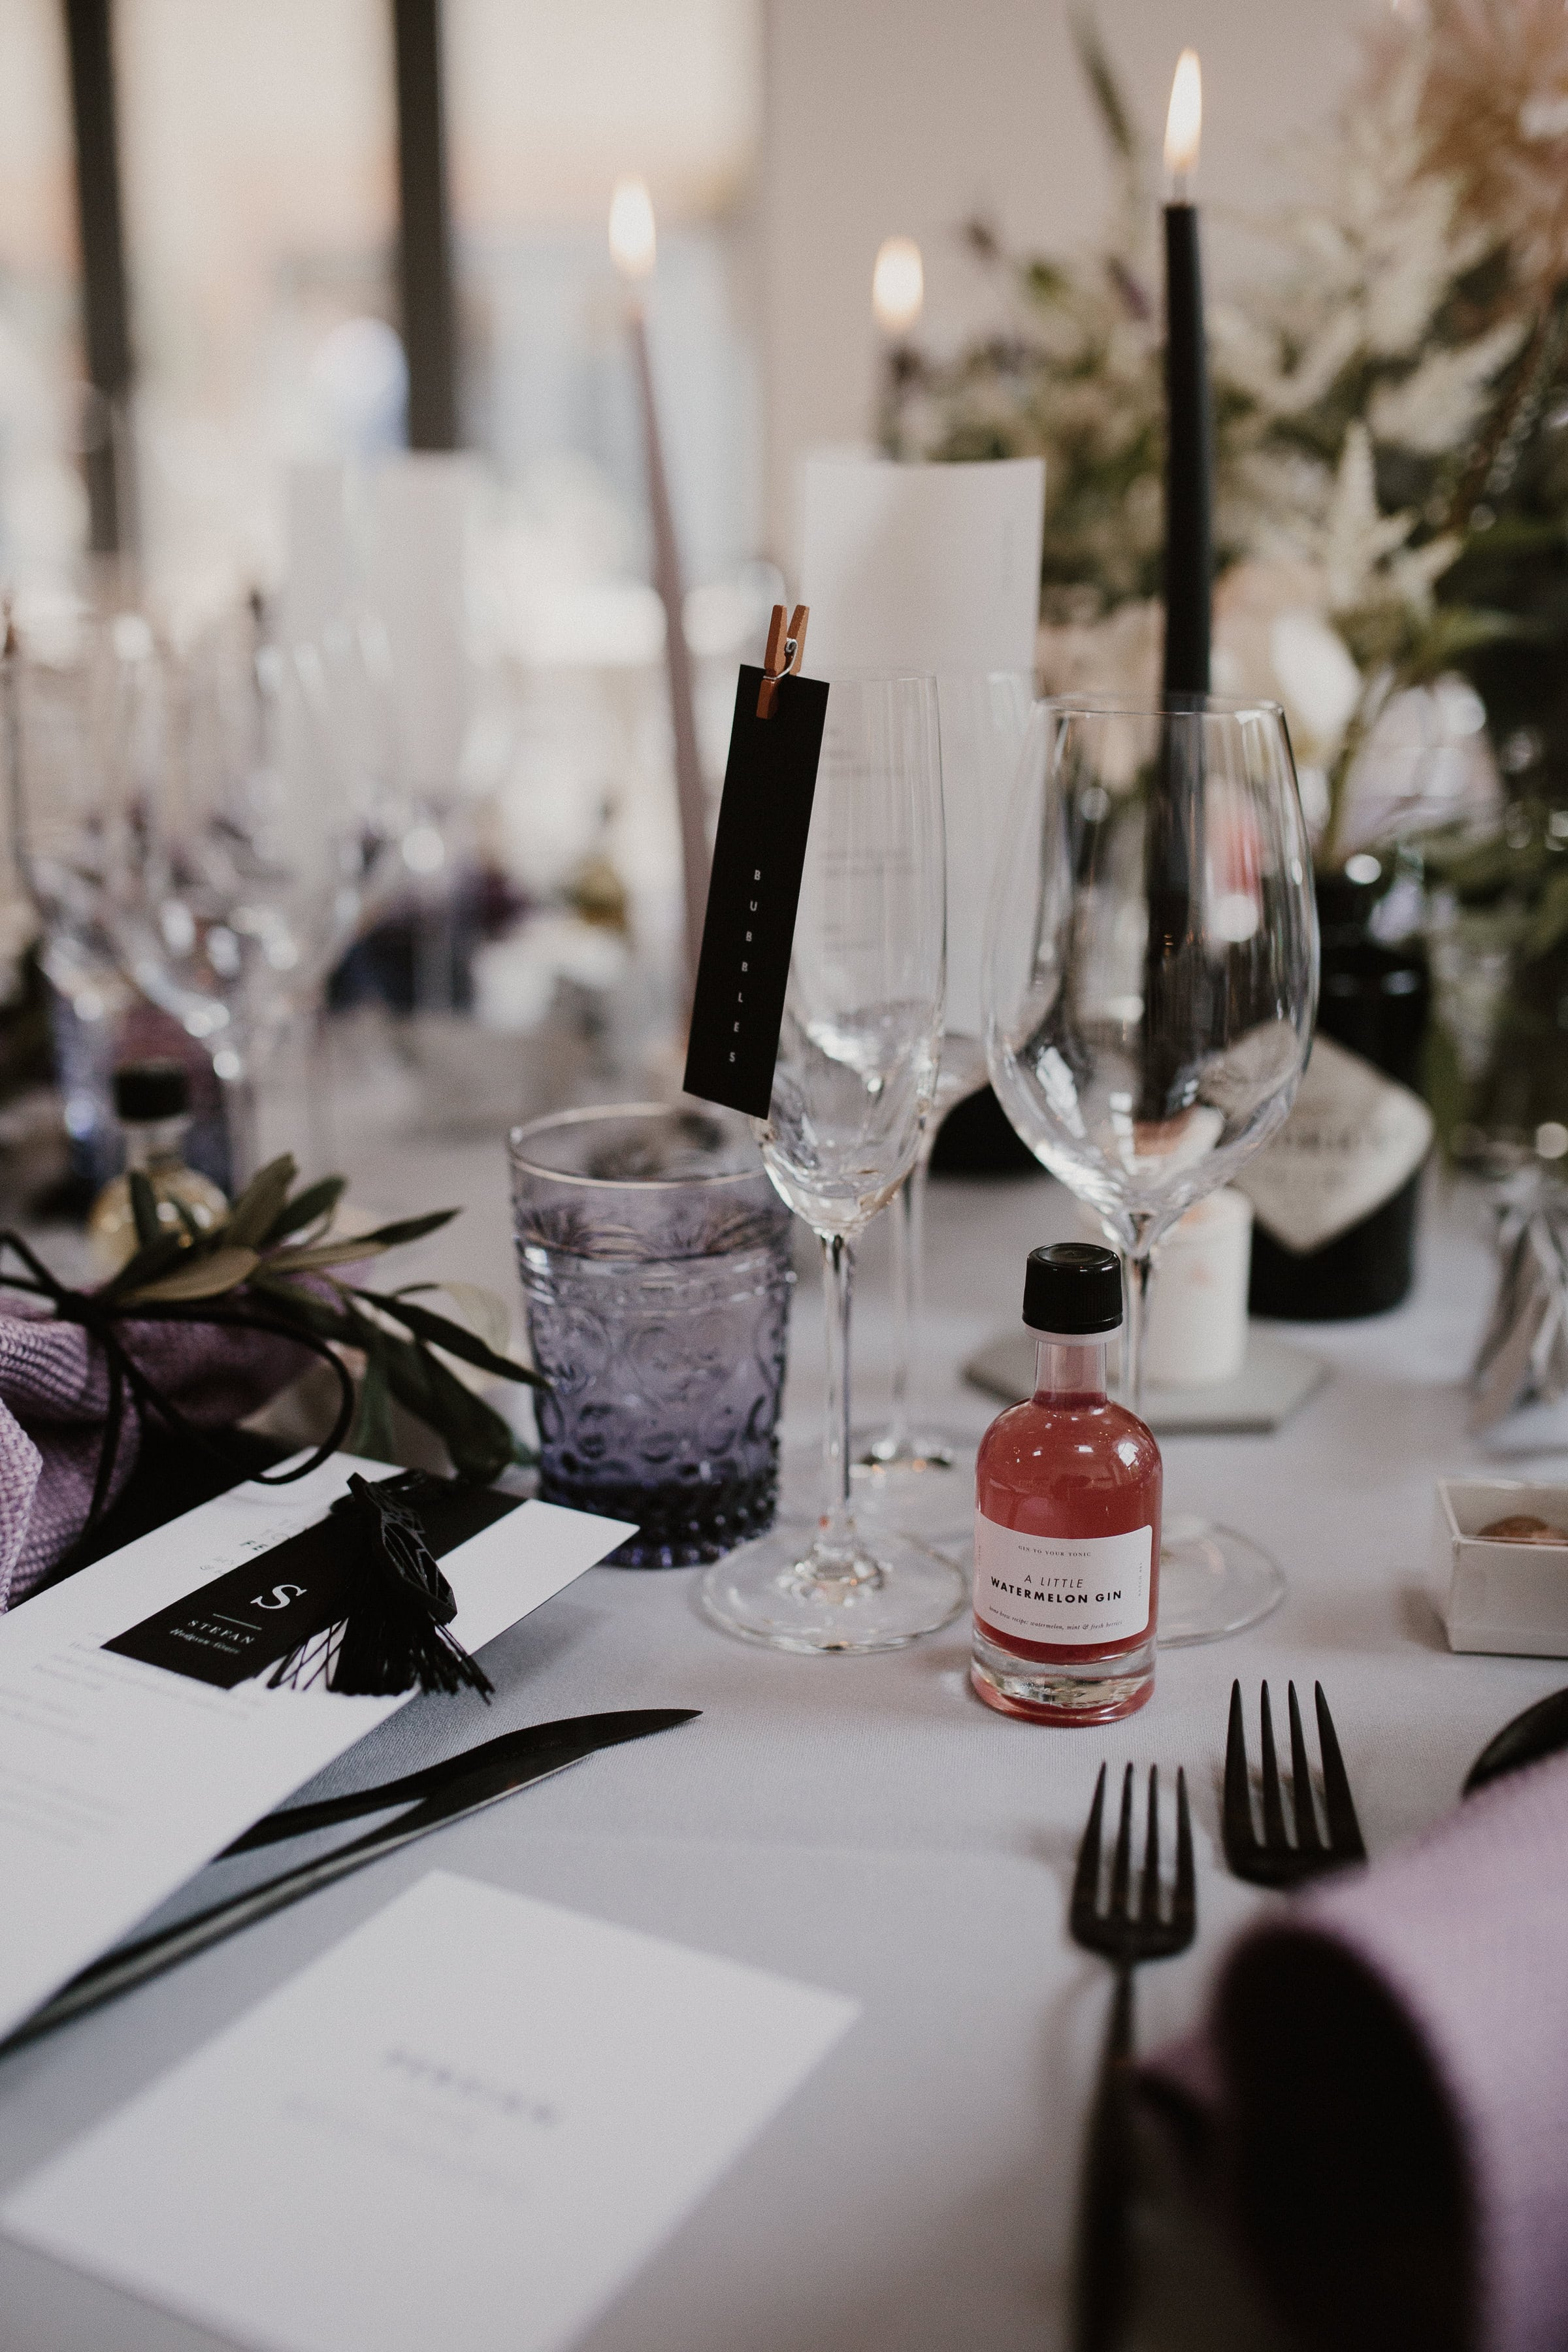 Nat and Tom - 01 - Venue and Details - Sara Lincoln Photography-57-min.jpg